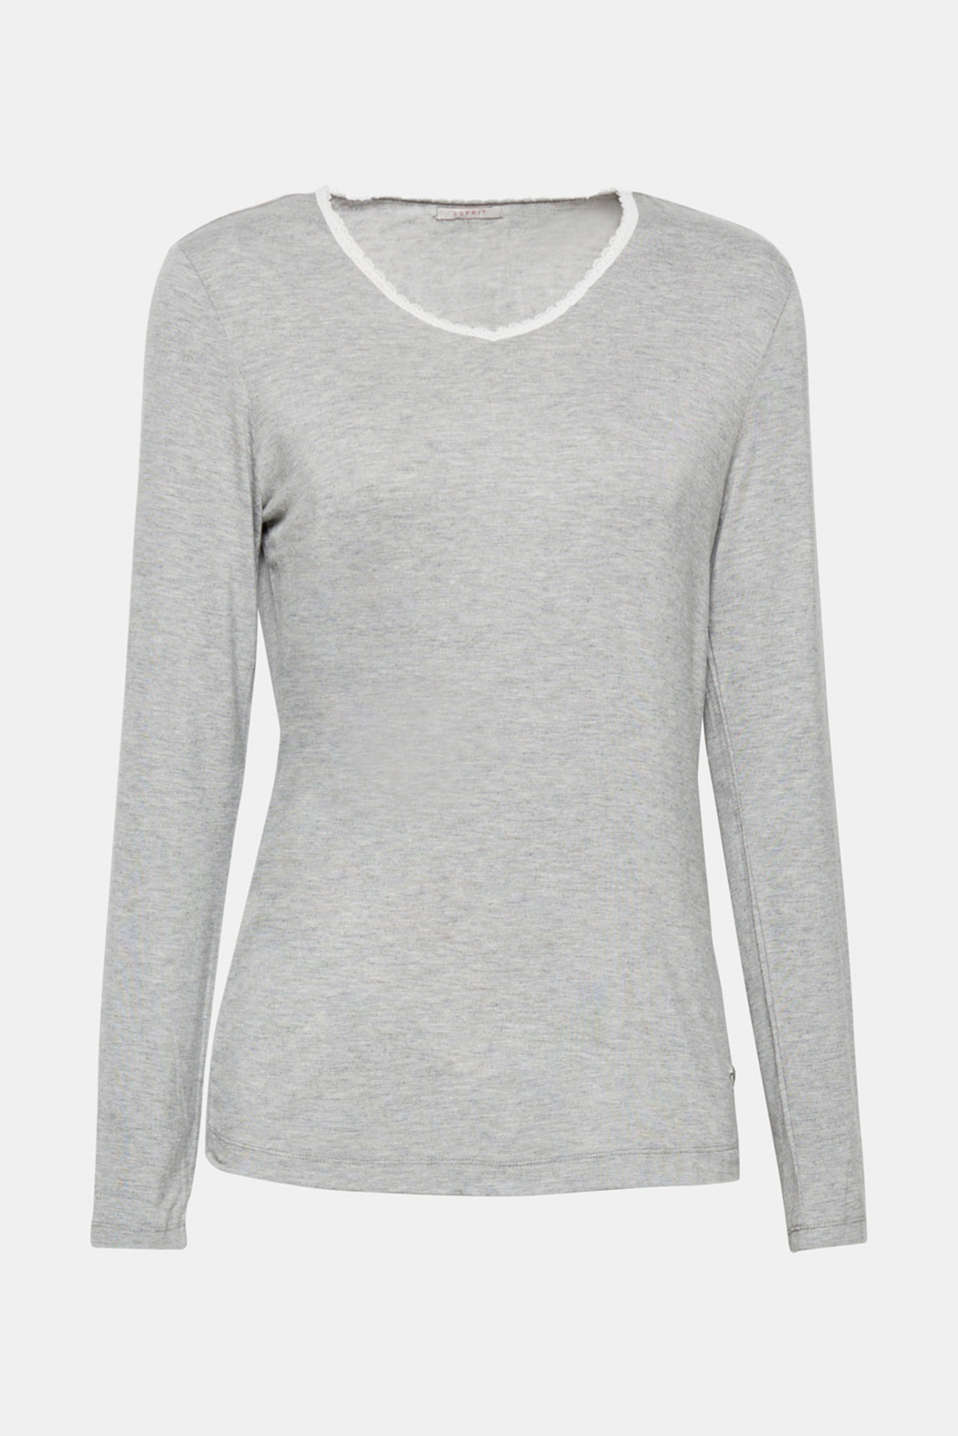 Stretch long sleeve top trimmed with lace, MEDIUM GREY, detail image number 5